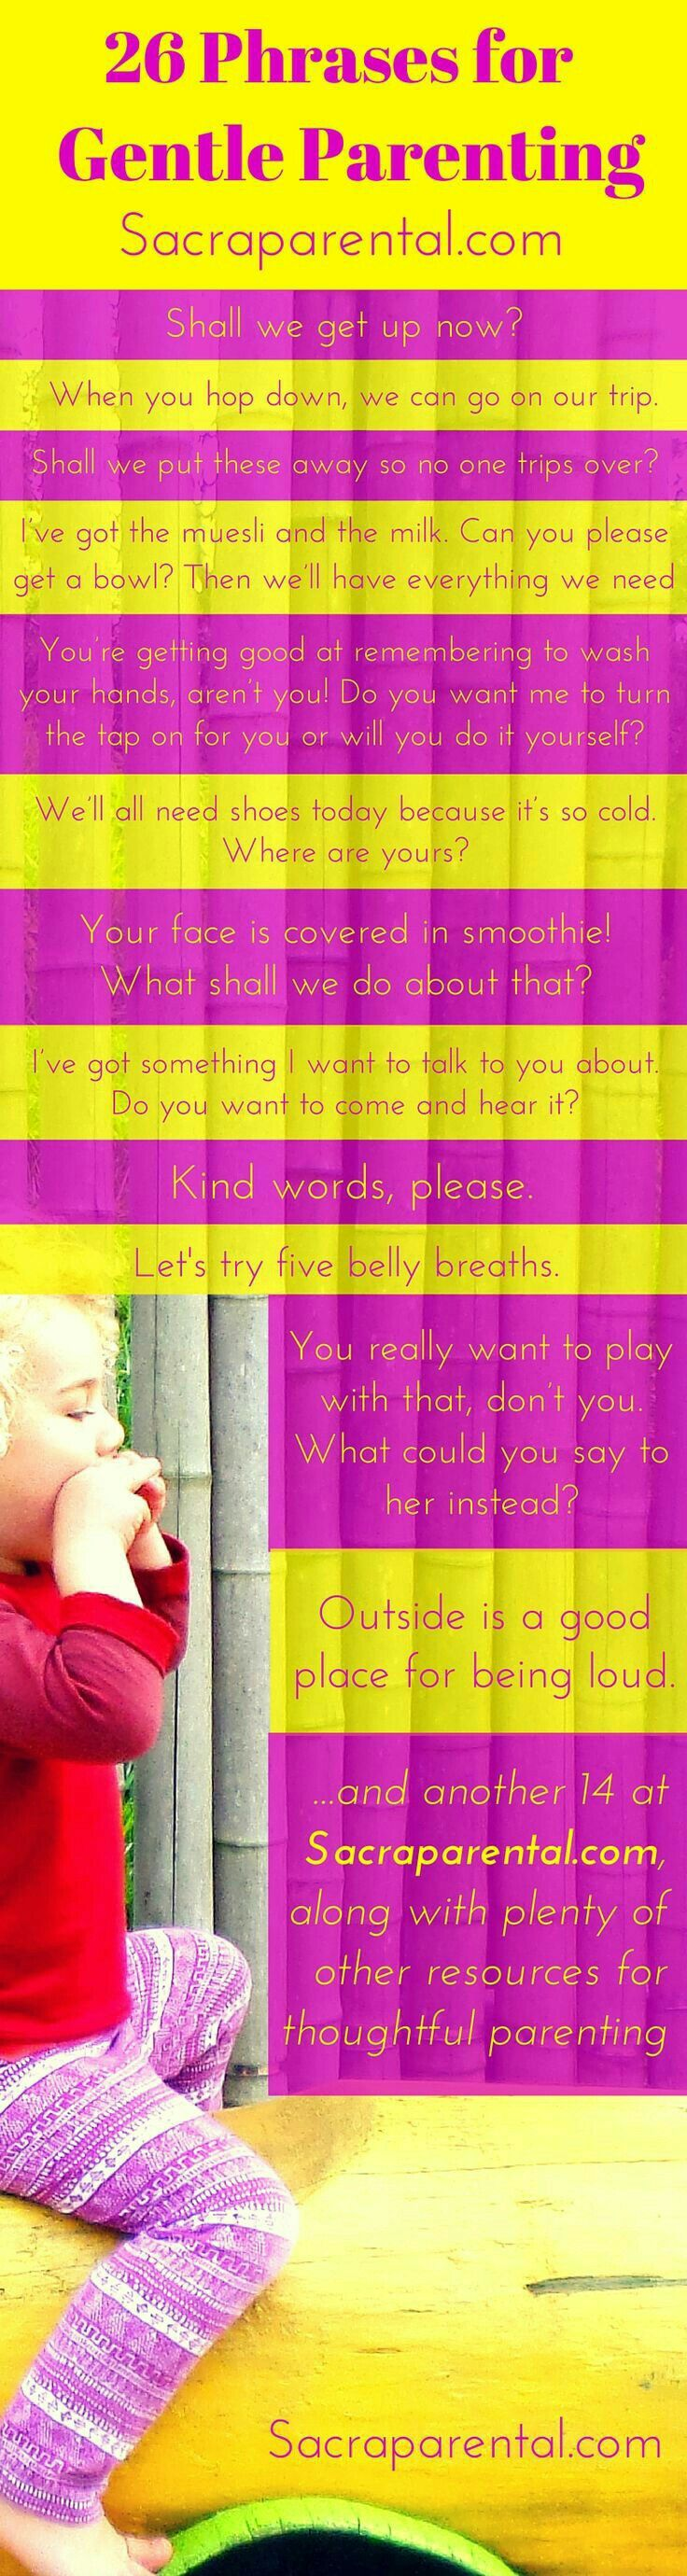 Phrases for Gentle Parenting